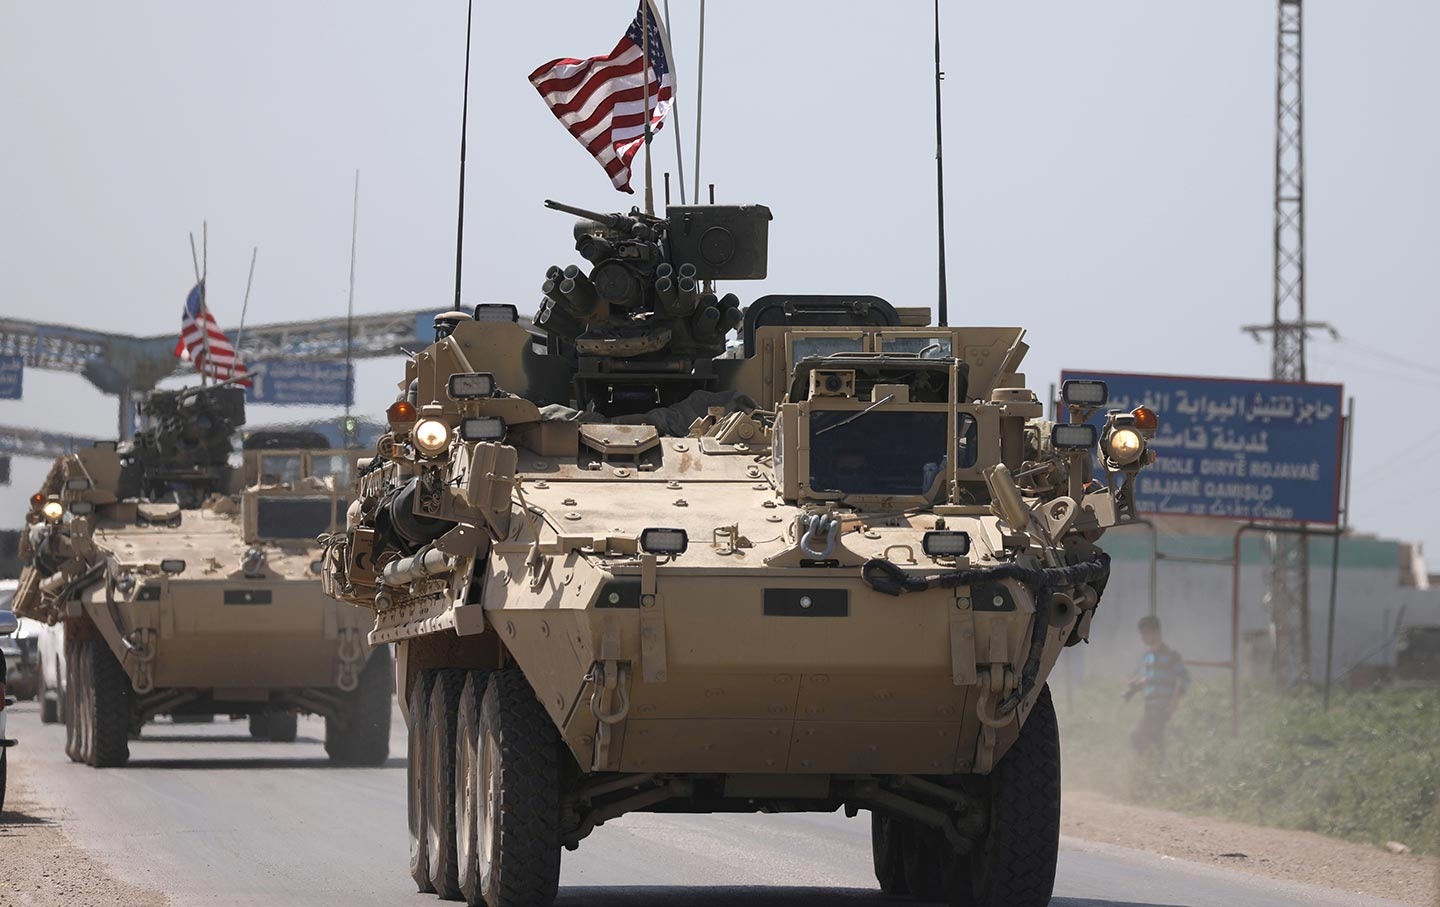 US military in Qamishli, Syria